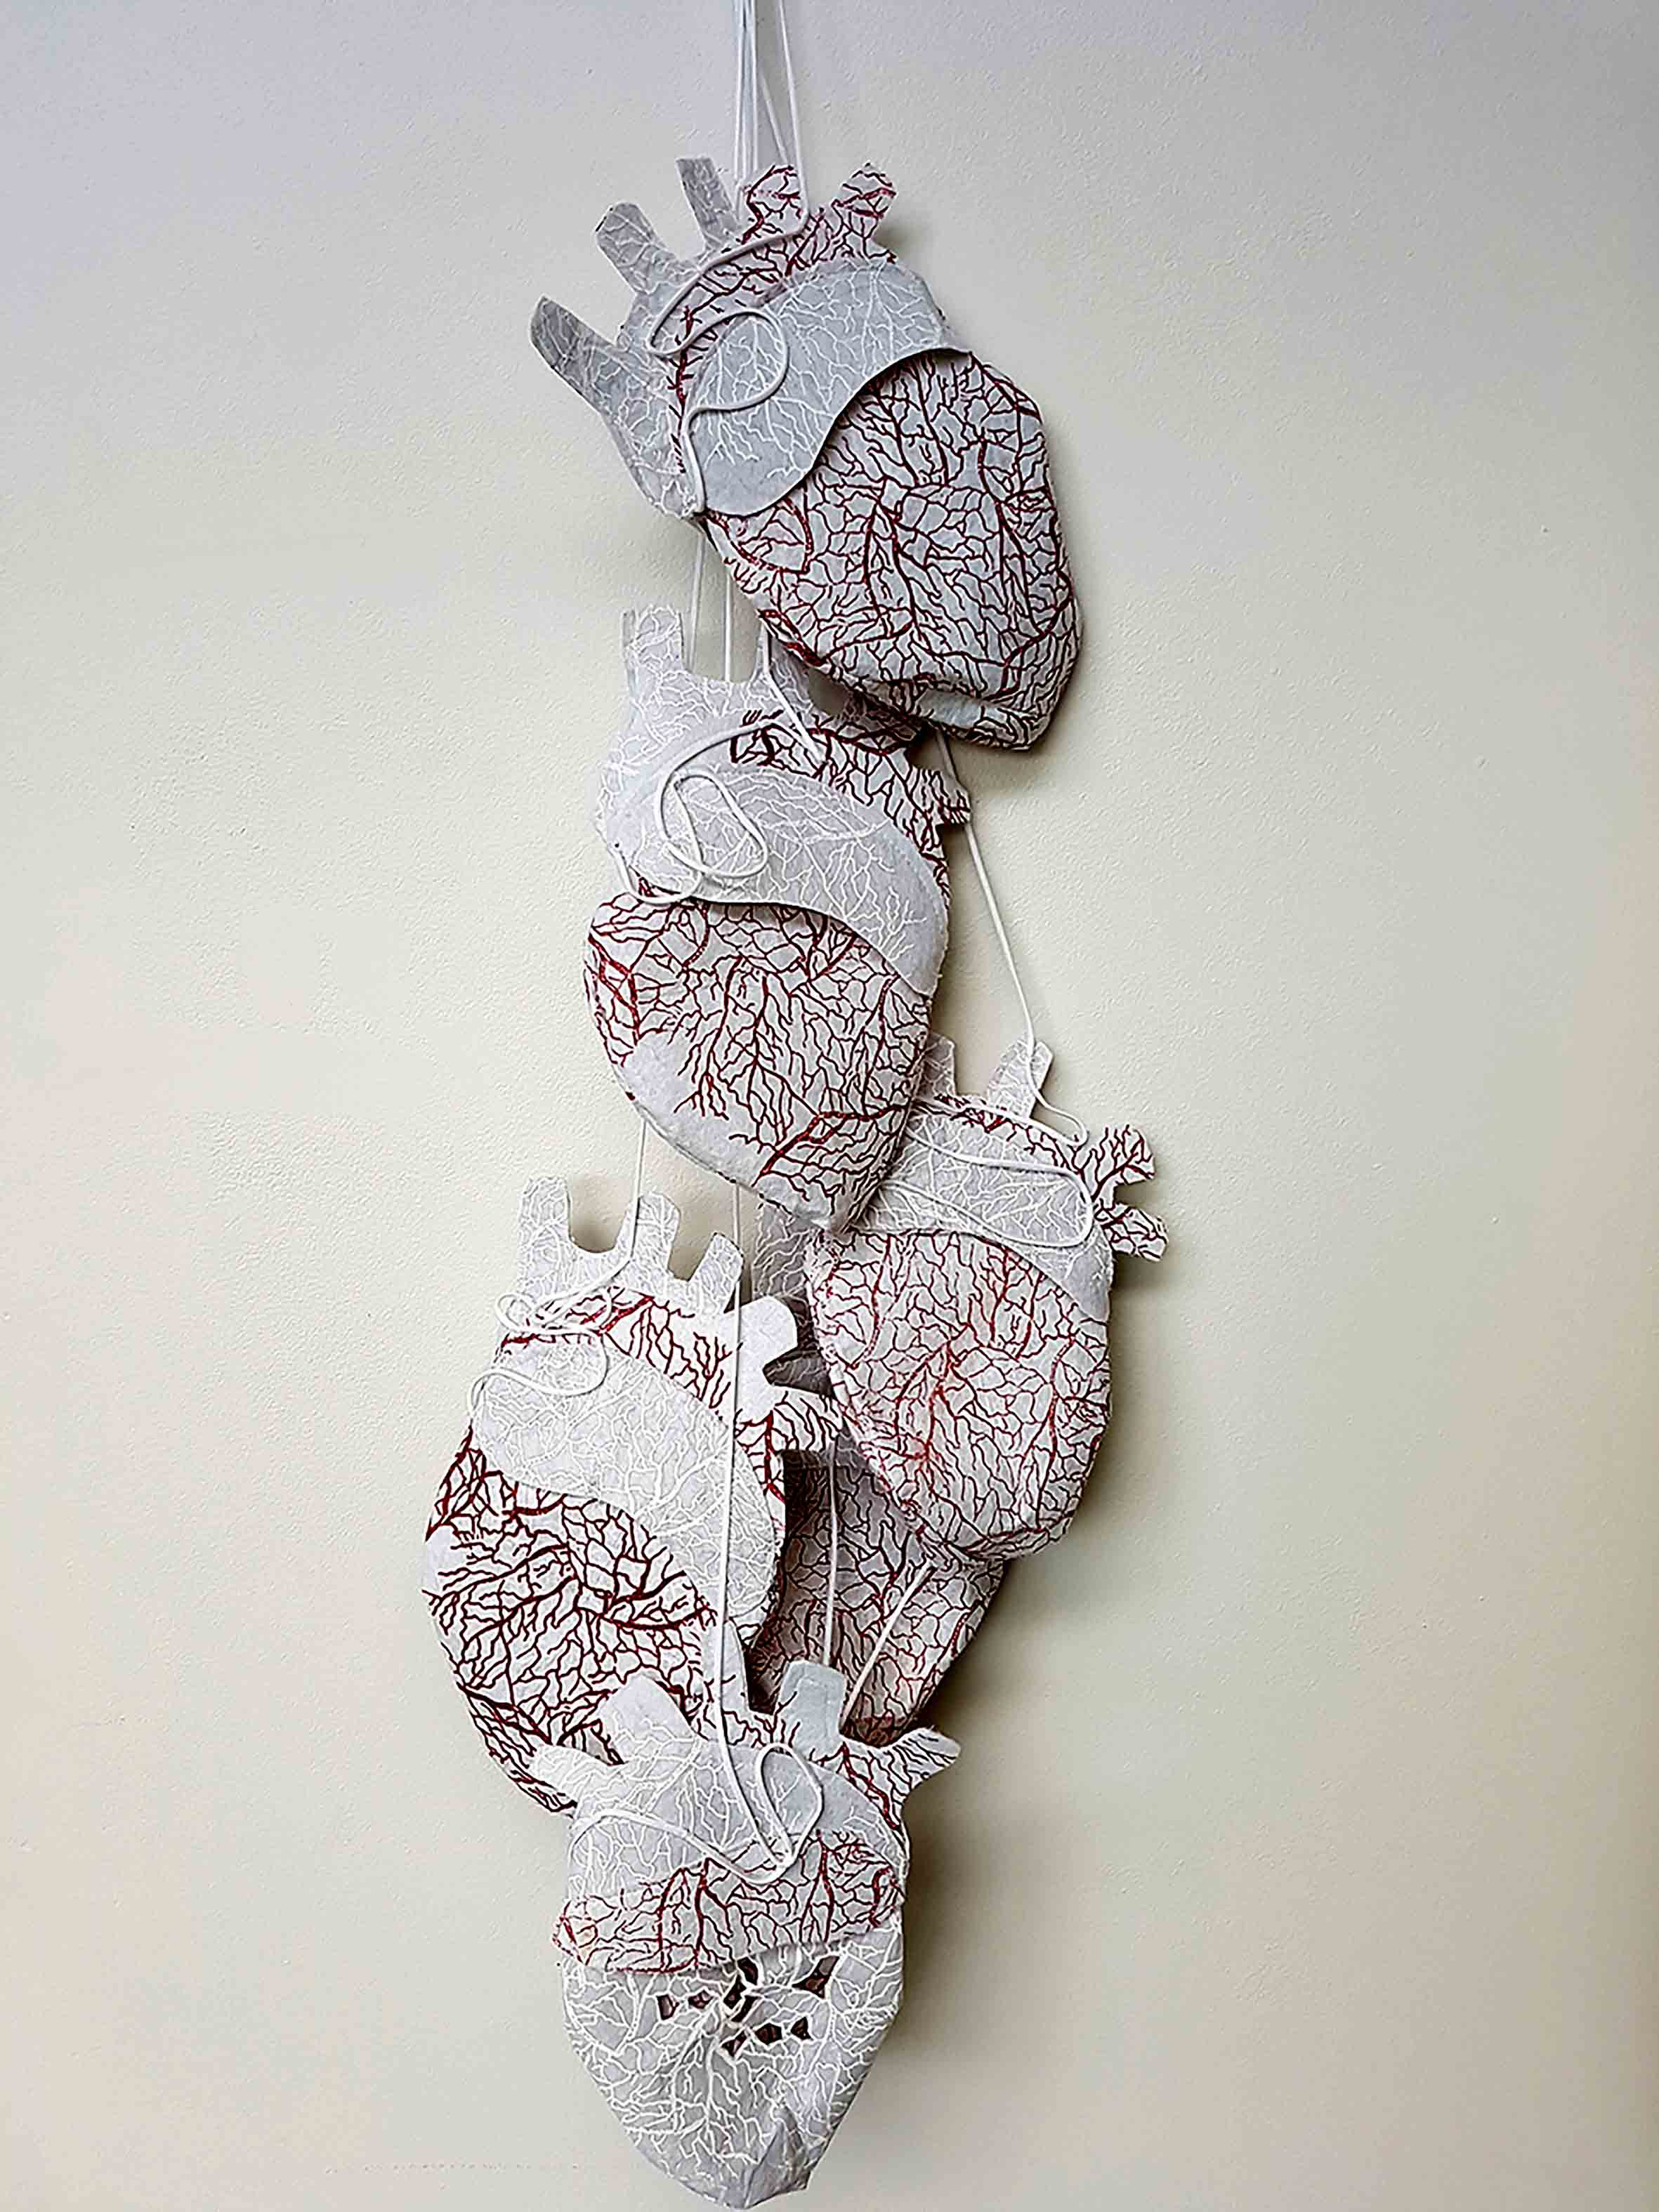 emma-mcclellan-spares-for-the-broken-hearted-printmaking